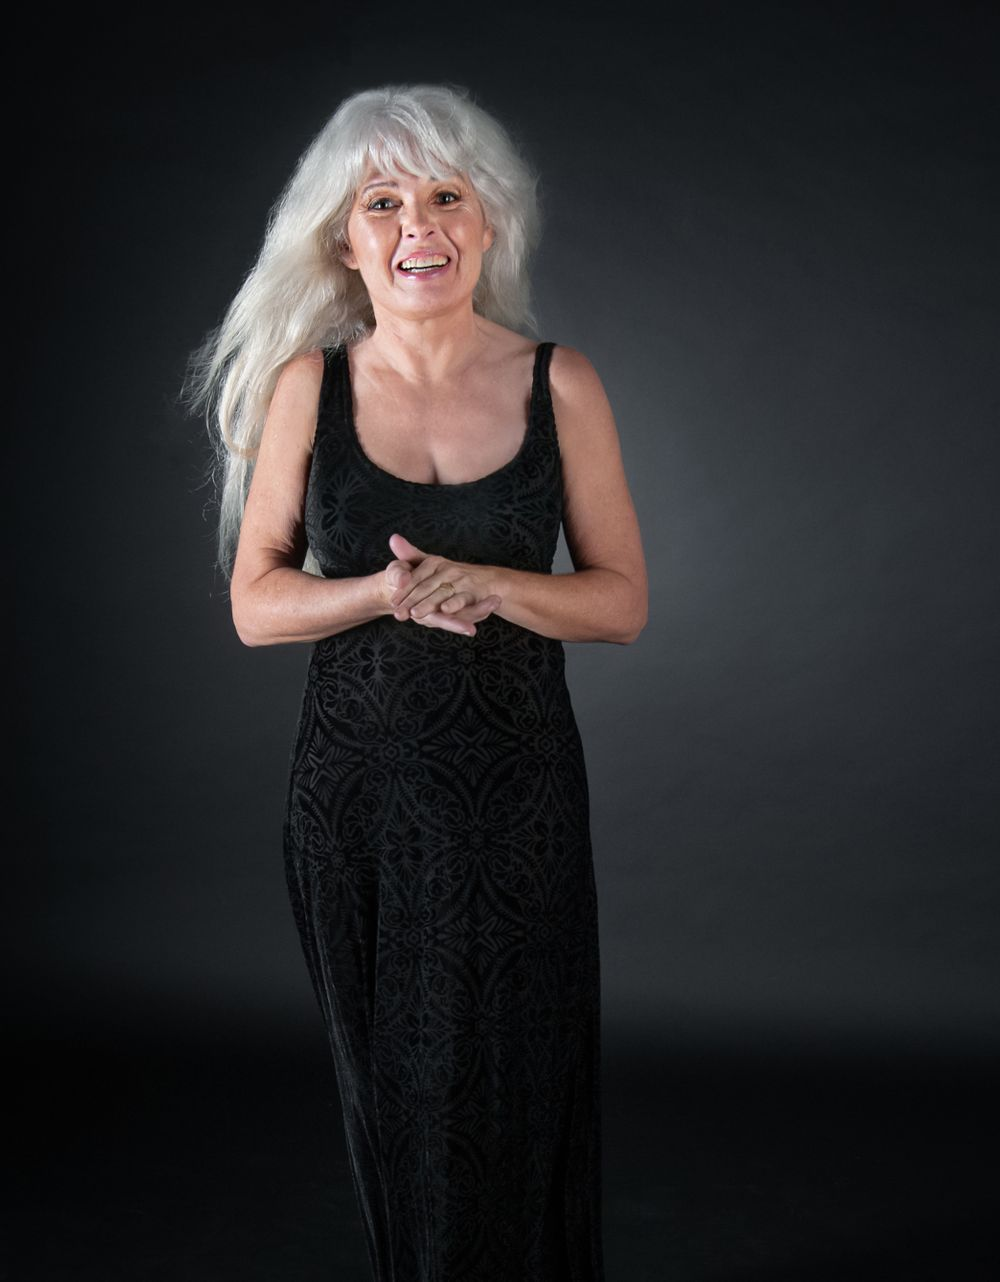 senior citizen with long silver hair stands for portrait